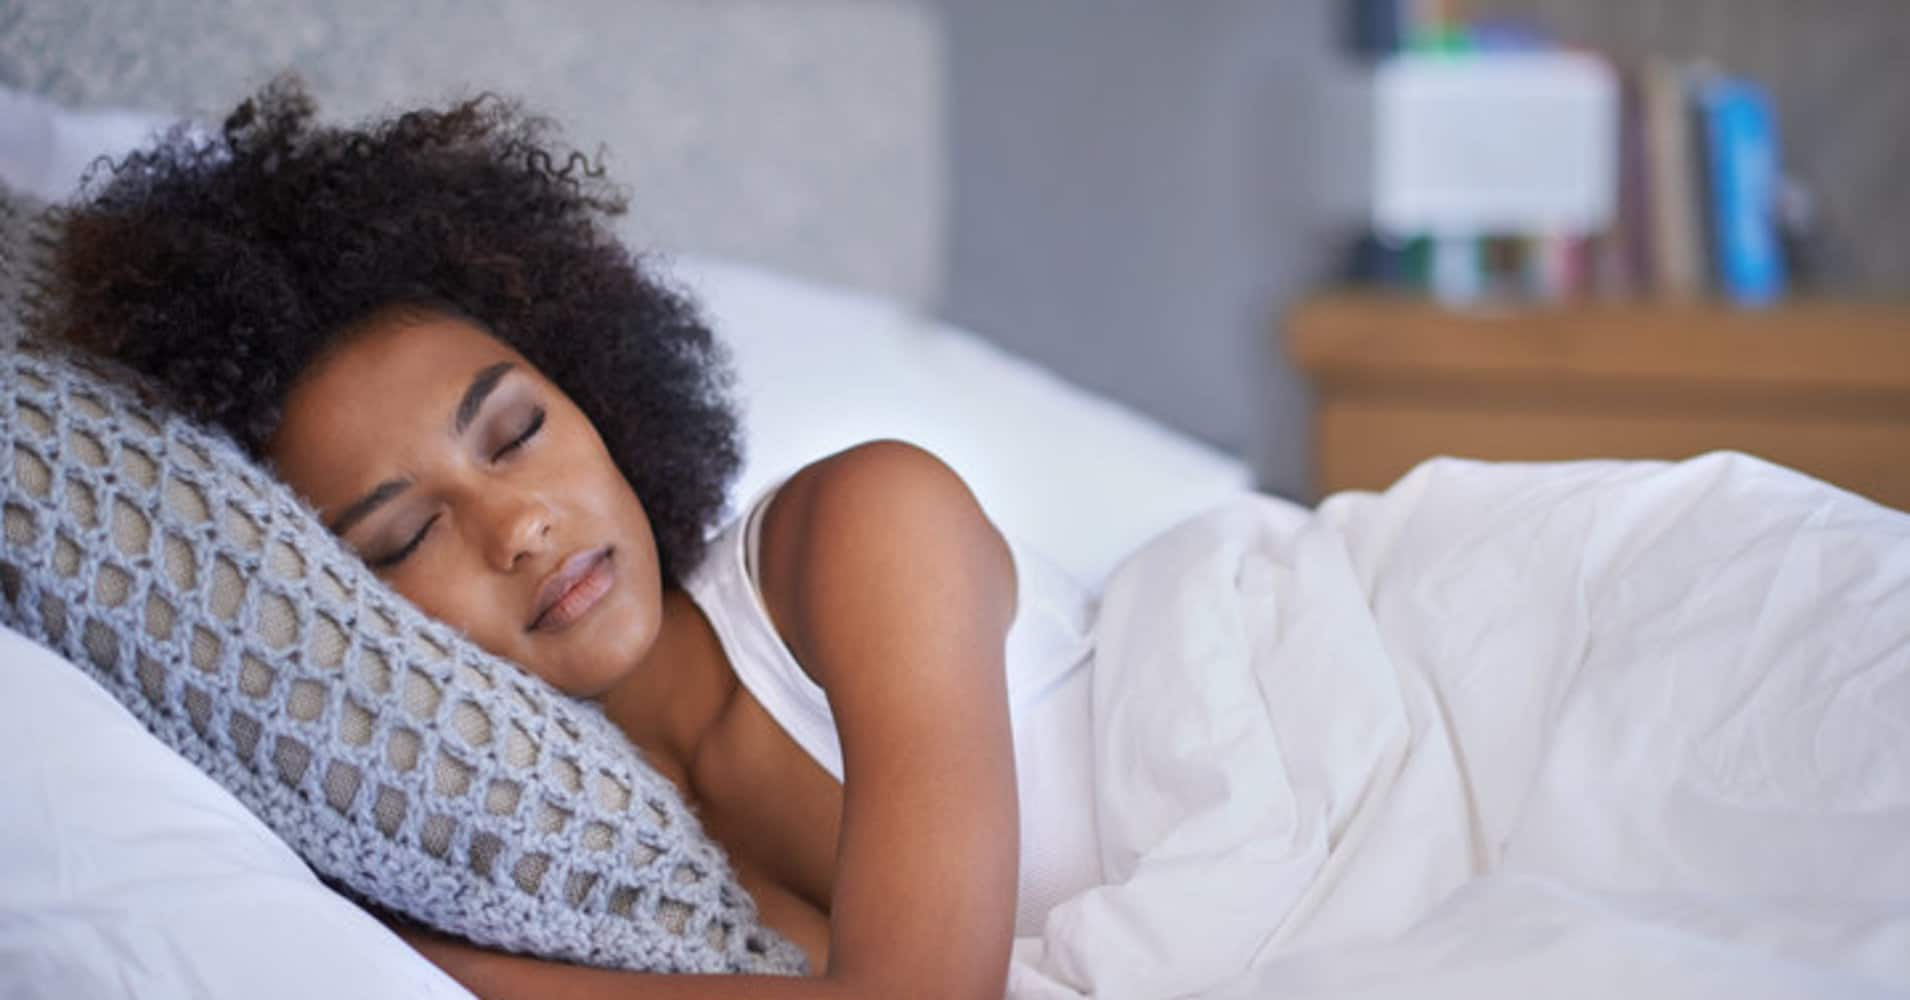 black woman sleeping in bed sleep